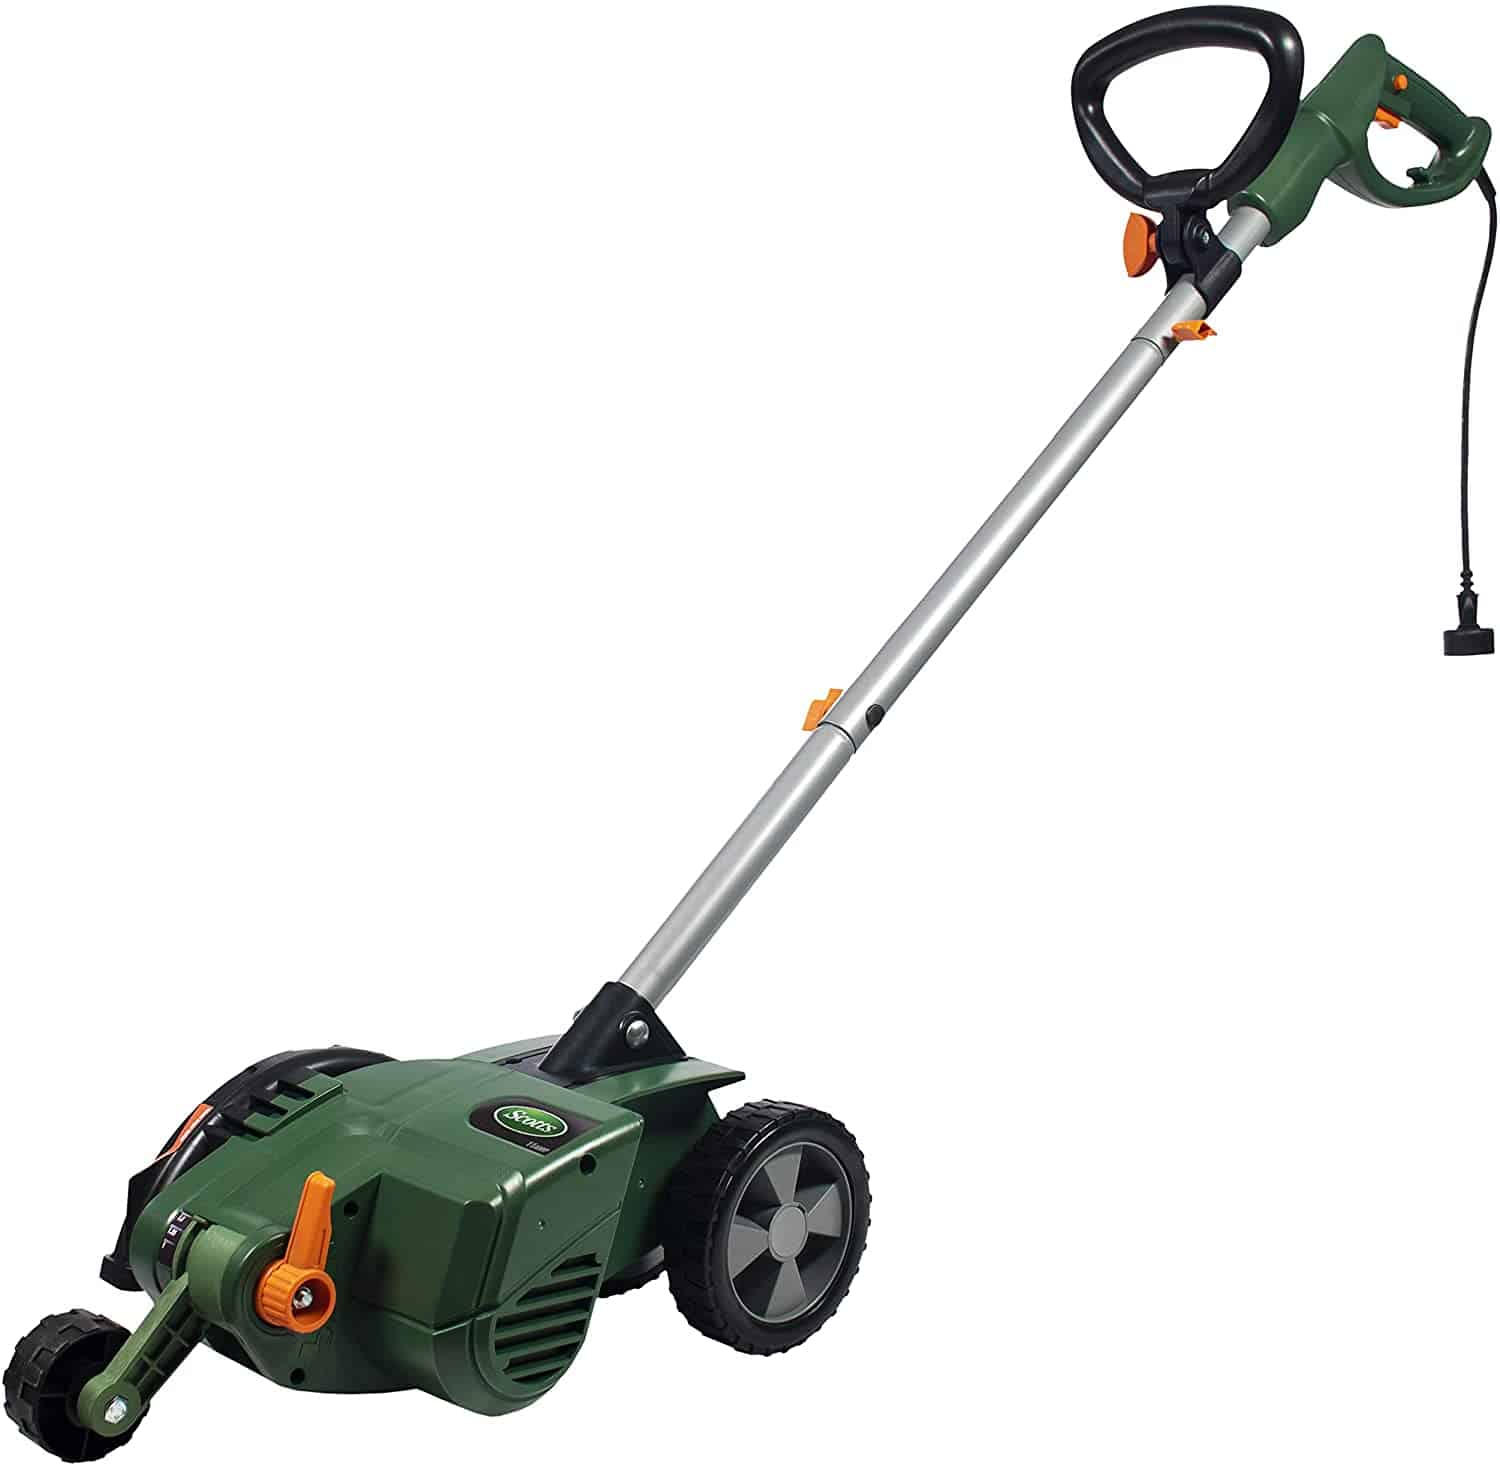 scotts outdoor power tools electric lawn edger